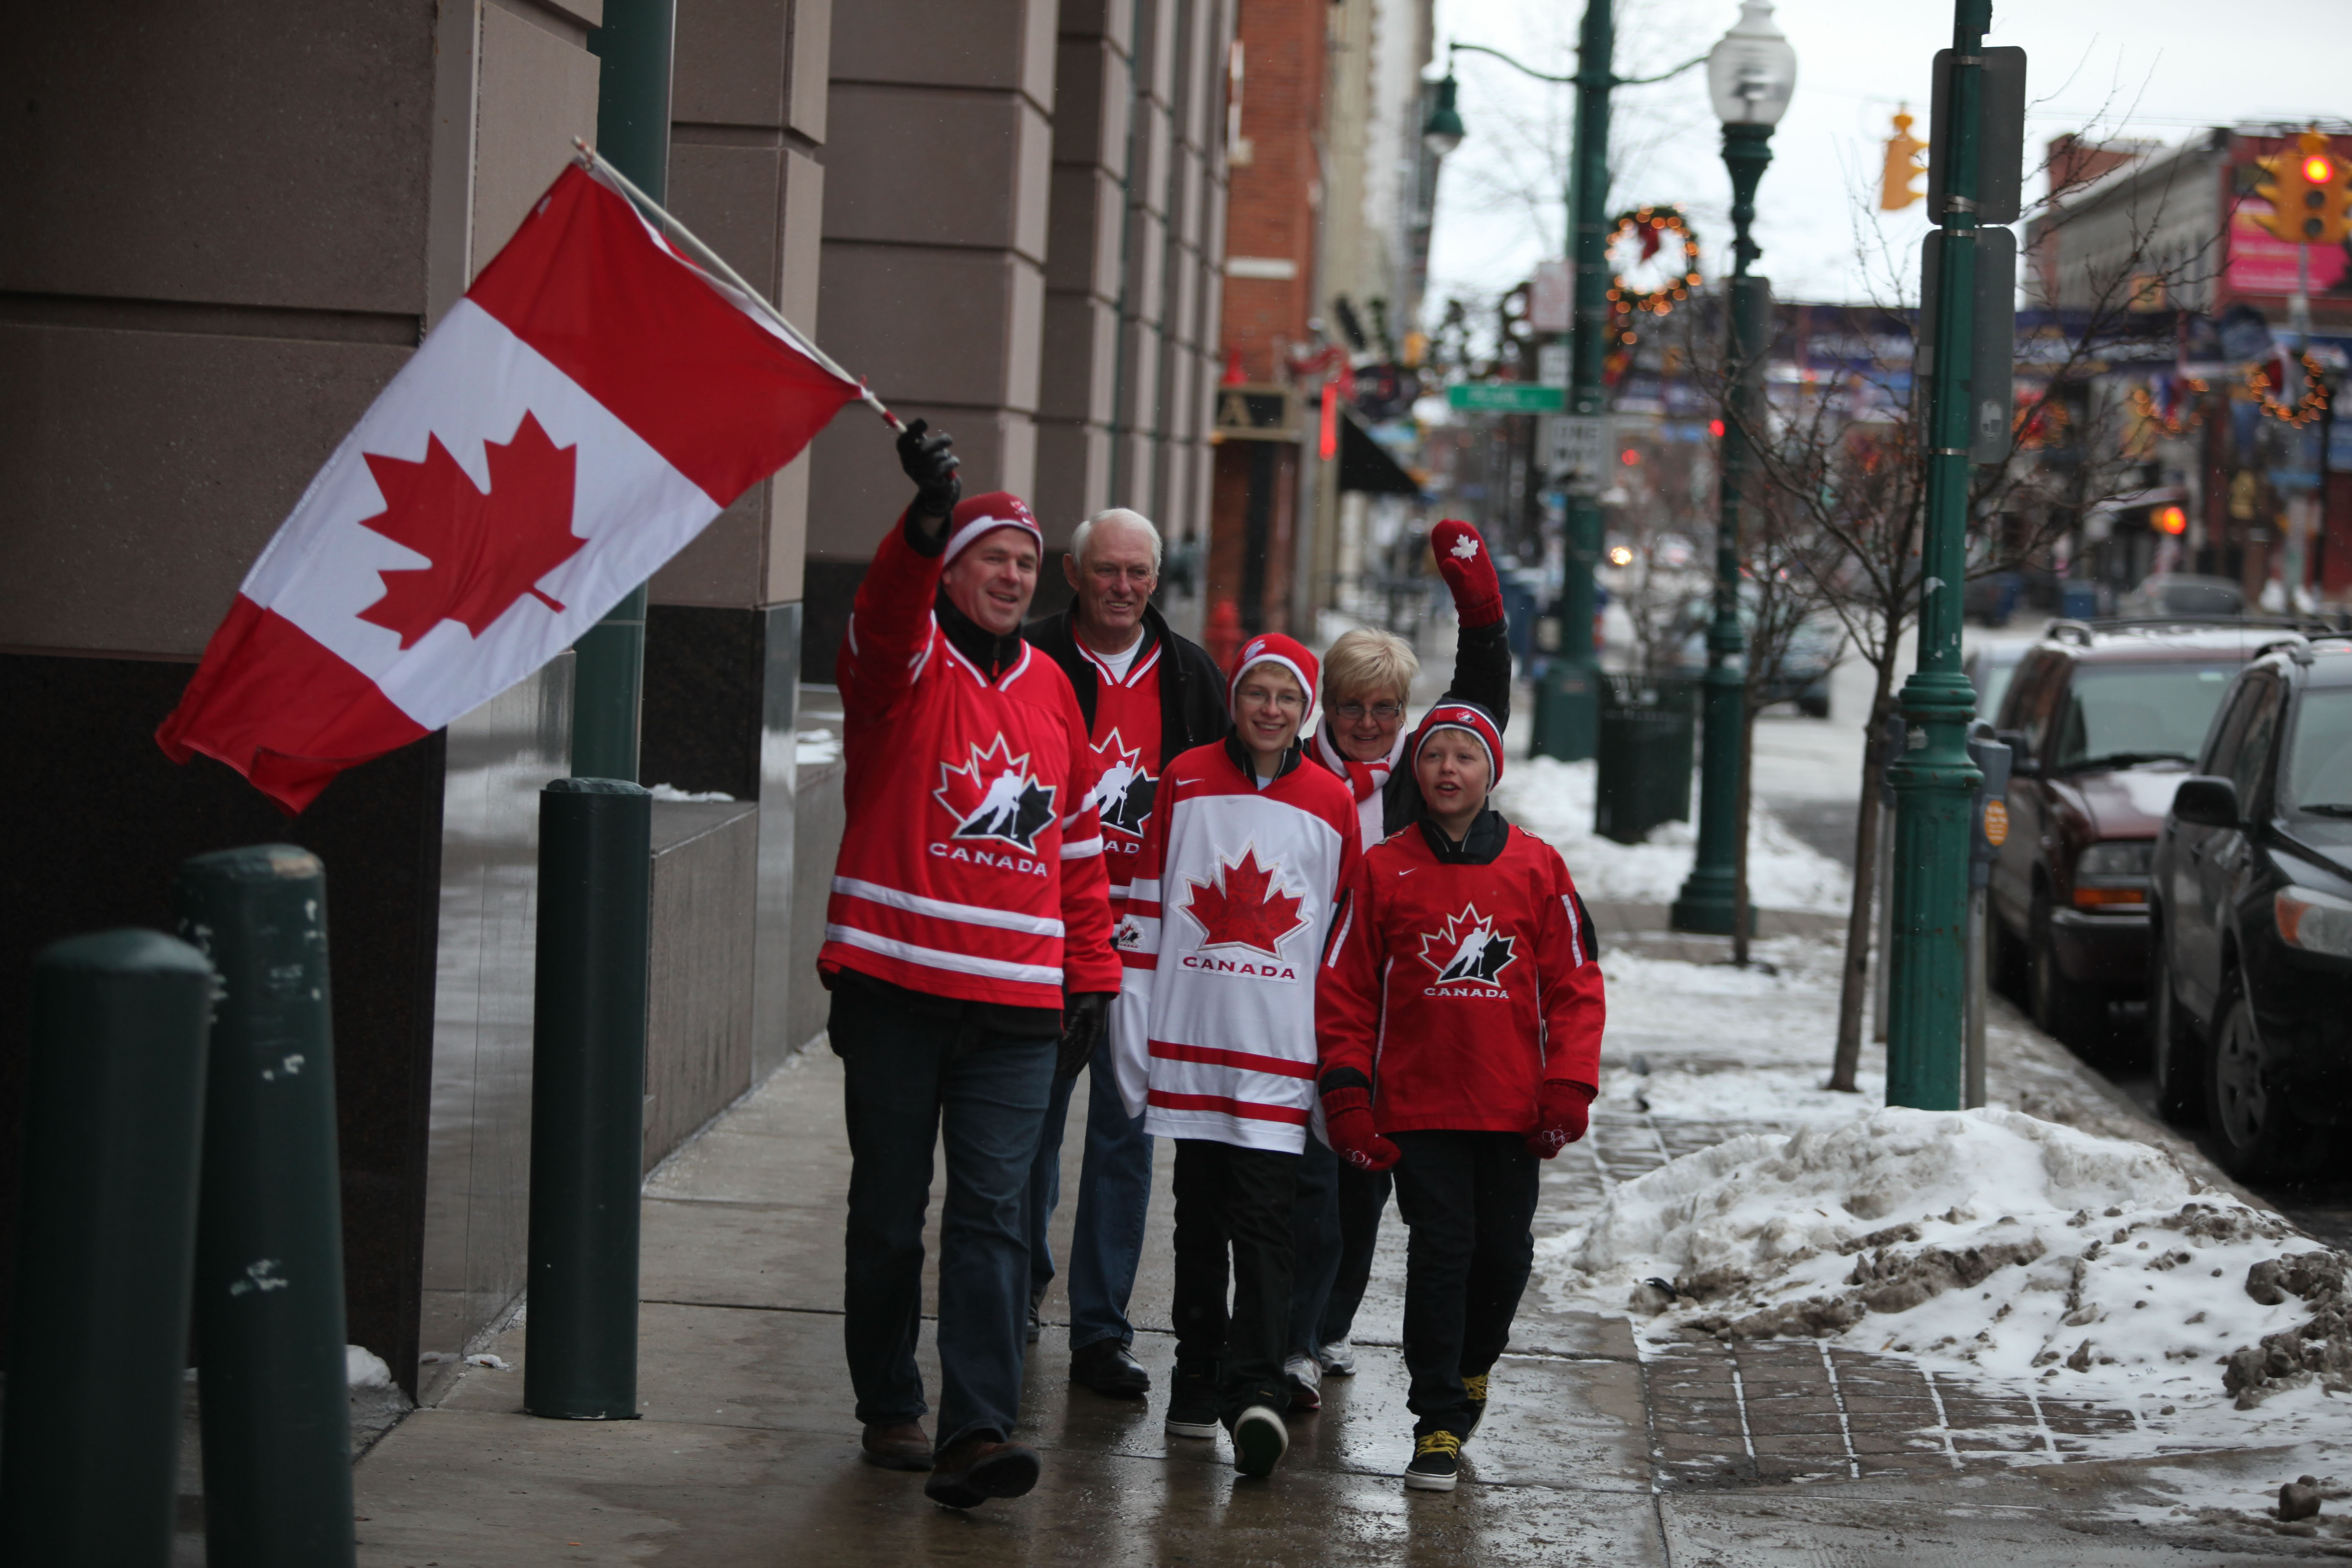 {FOR WATSON/CITYSIDE STORY} Mike Doughty, of Waterloo, Ontario, left, waves a Canadian flag while walking down Chippewa St. in downtown Buffalo with his two sons, Erik, 13, and Zach, 11, and their grandparents, Fred and Carole Freeman, of Calgary, Ontario, Sunday, December 26, 2010. The group was headed to the train station to watch the Junior Hockey Championships at HSBC Arena.  {Photo by Charles Lewis/Buffalo News}